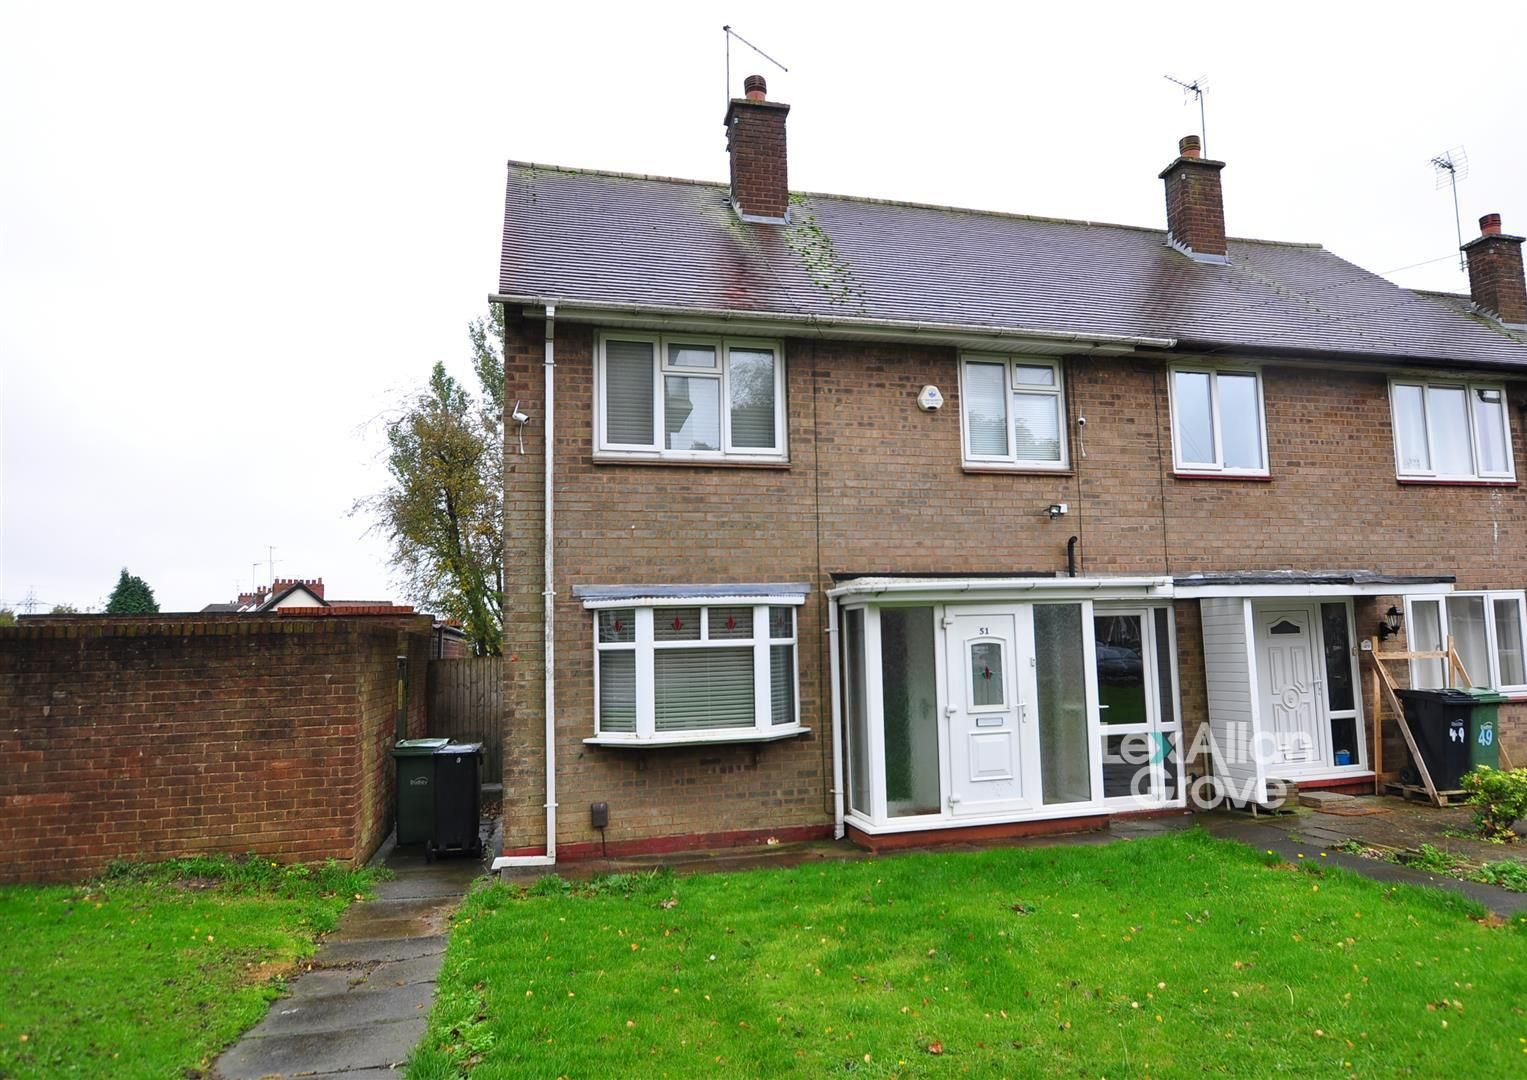 3 bed end-of-terrace for sale, B62